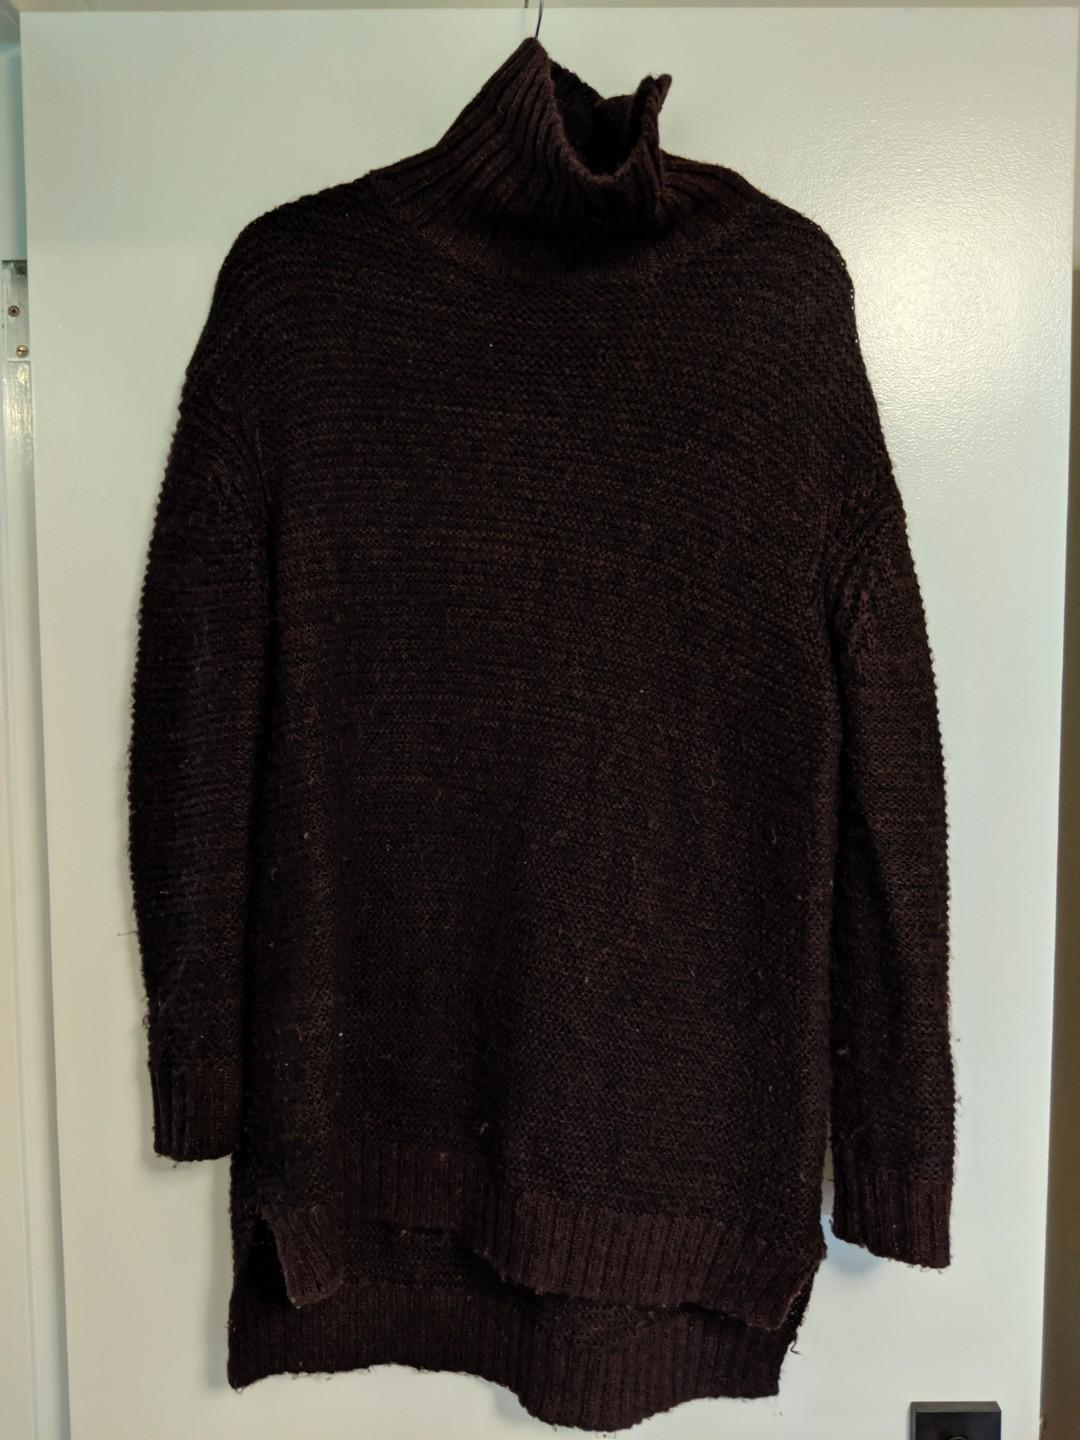 Chunky Turtleneck Oversized Sweater - Deep Wine colour